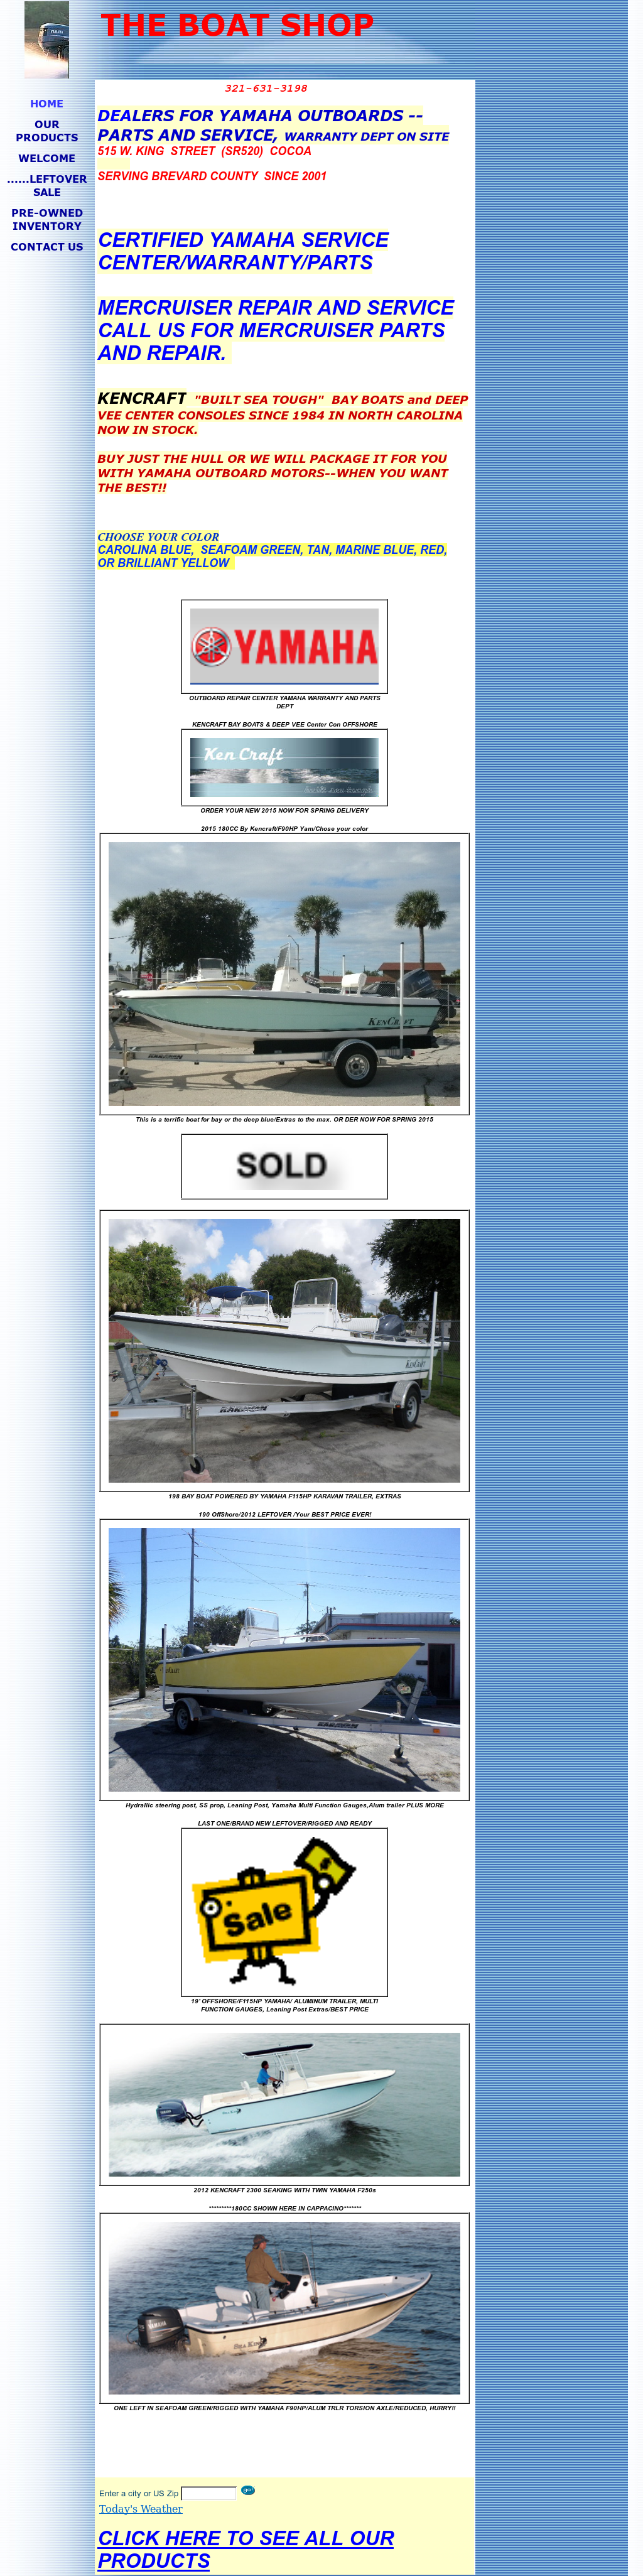 The Boat Shop Competitors, Revenue and Employees - Owler